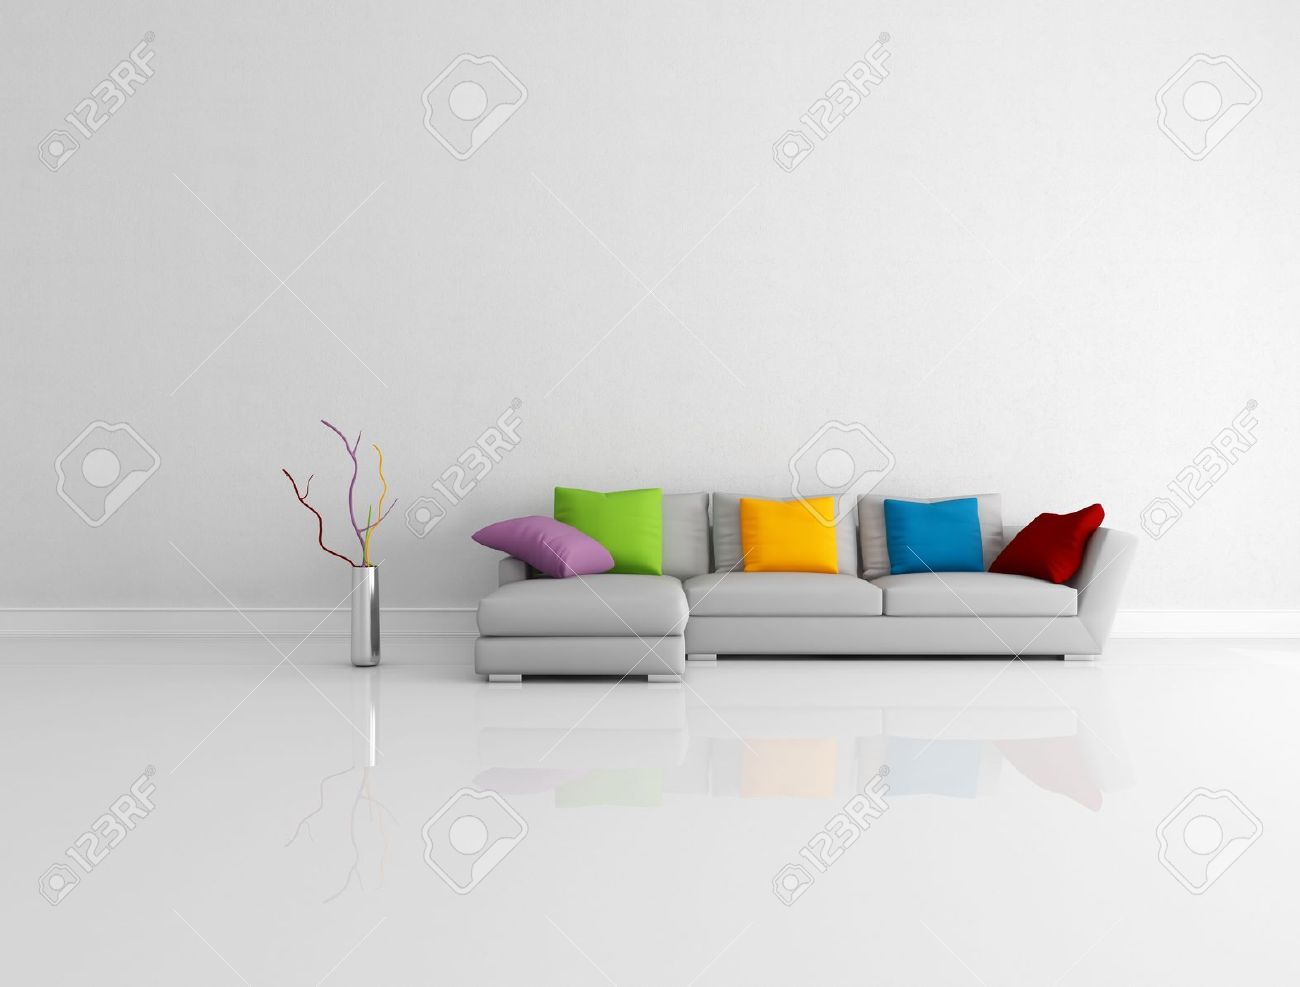 Gray Modern Couch With Colored Pillow In A Bright Empty Living